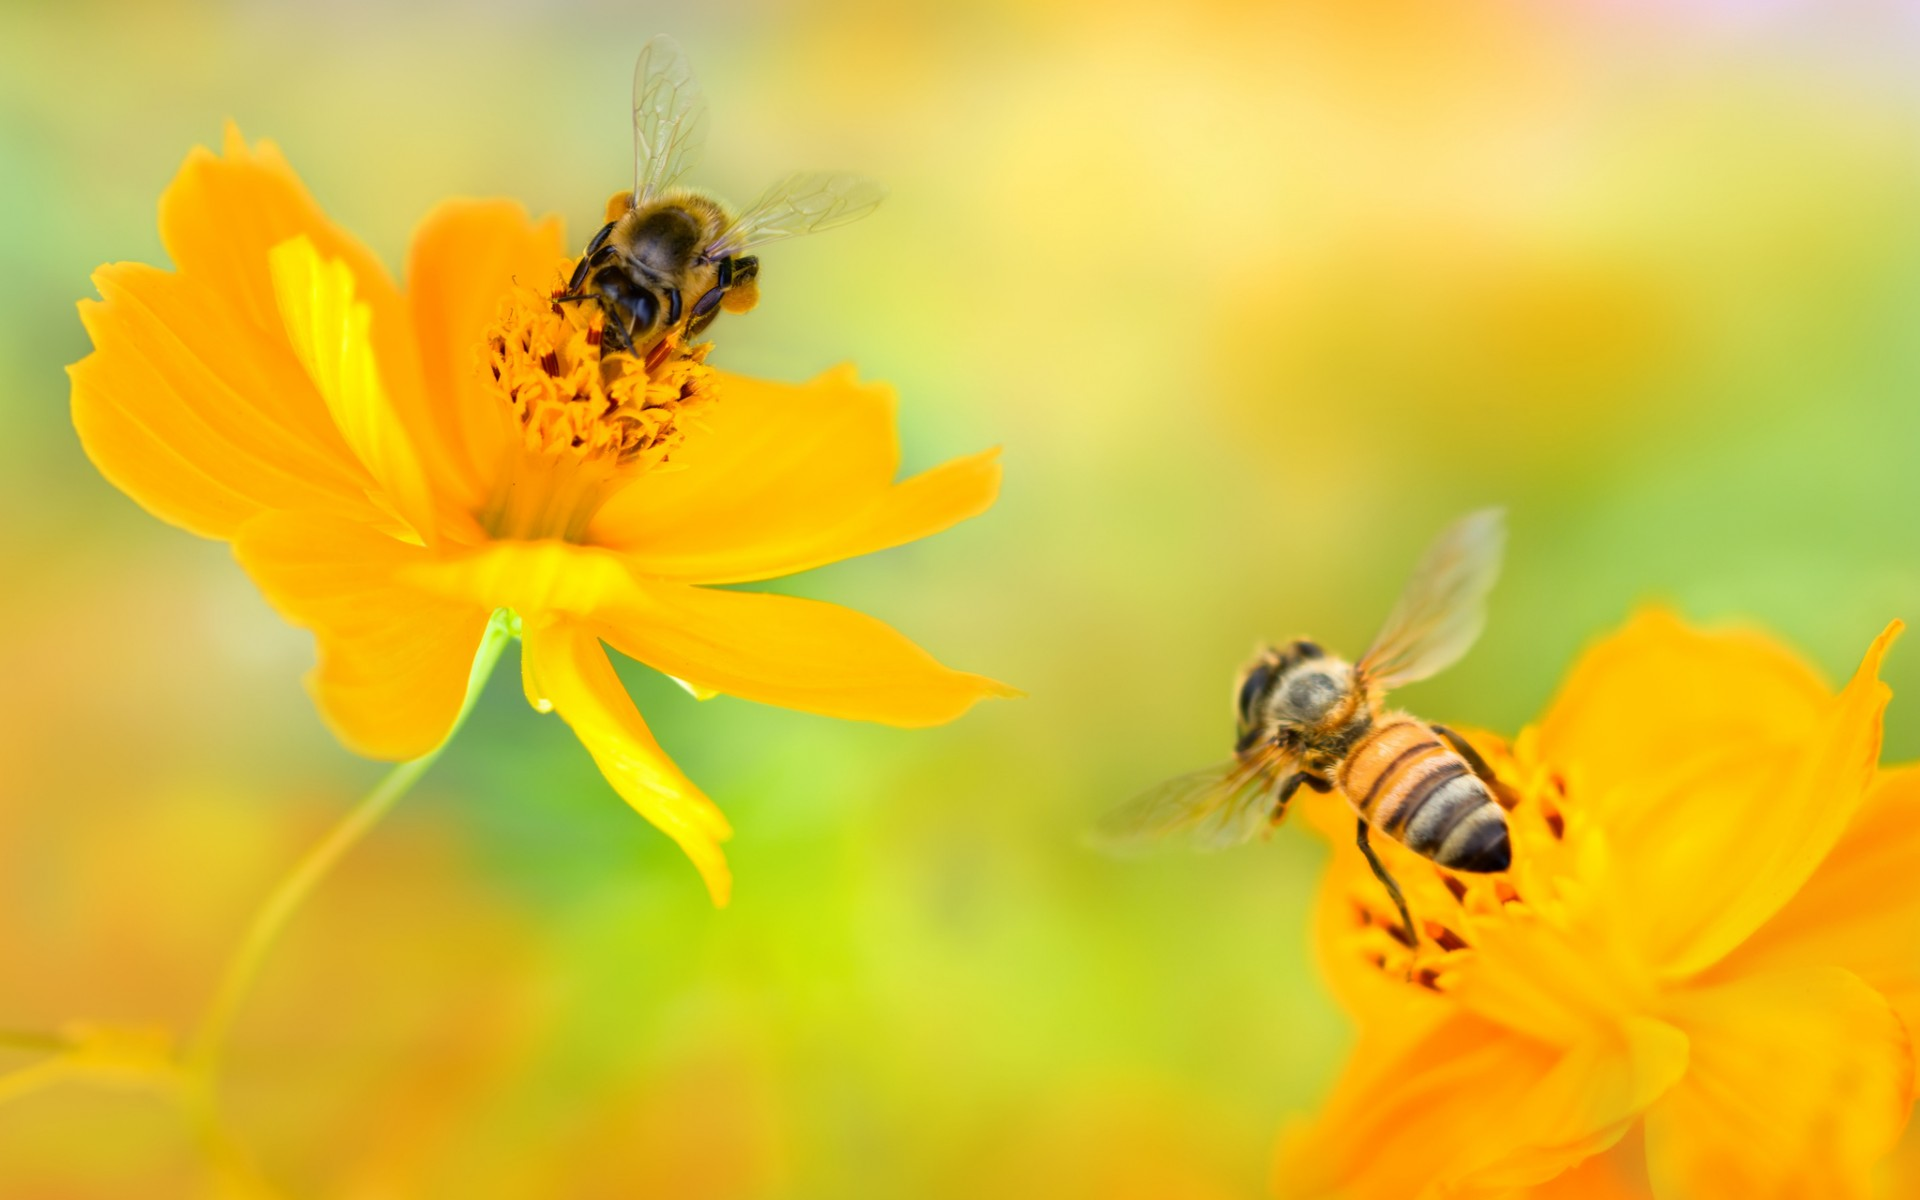 Bees Over Pretty Yellow Flowers HD Wallpaper